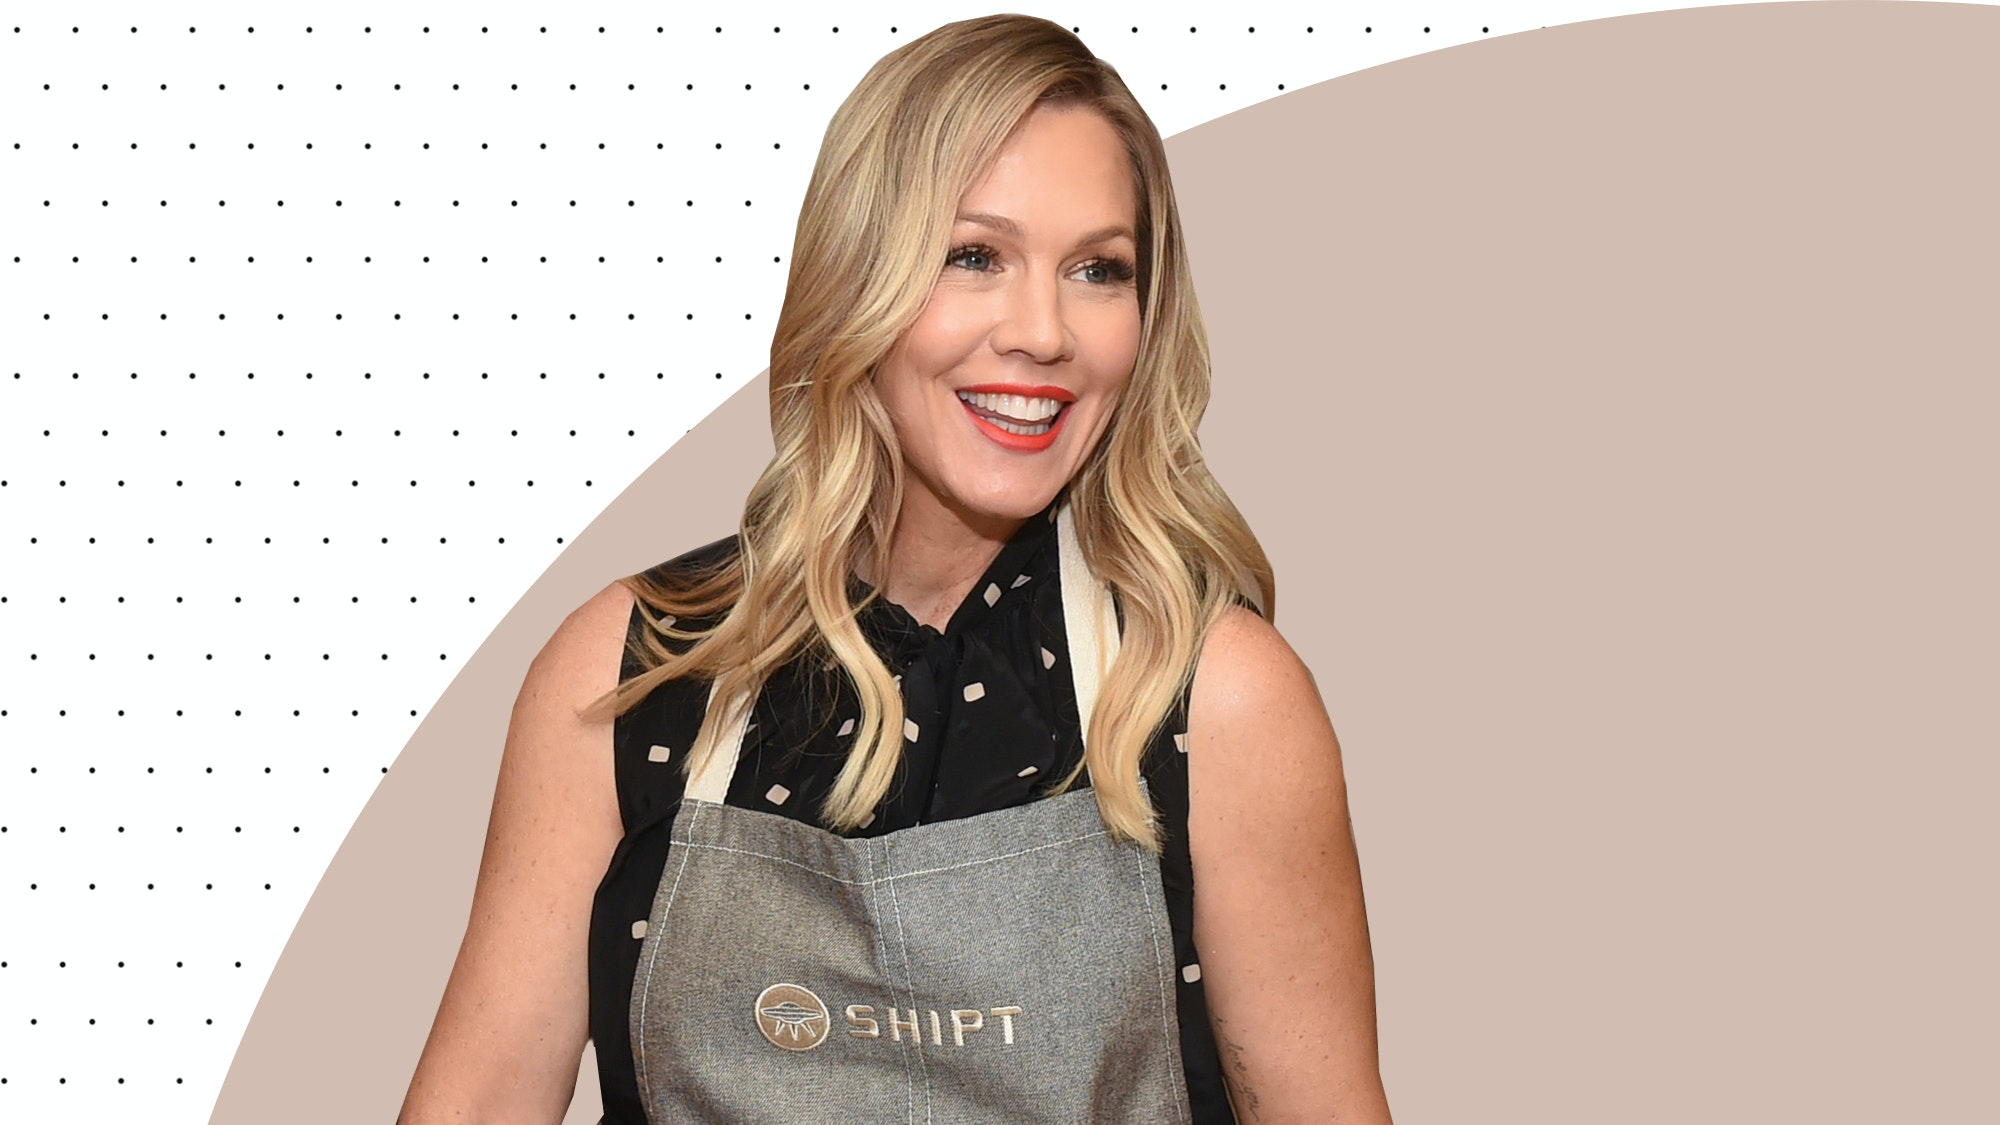 Actress Jennie Garth Shares Her Special DIY Face Mist For Fresh Skin at Age 47